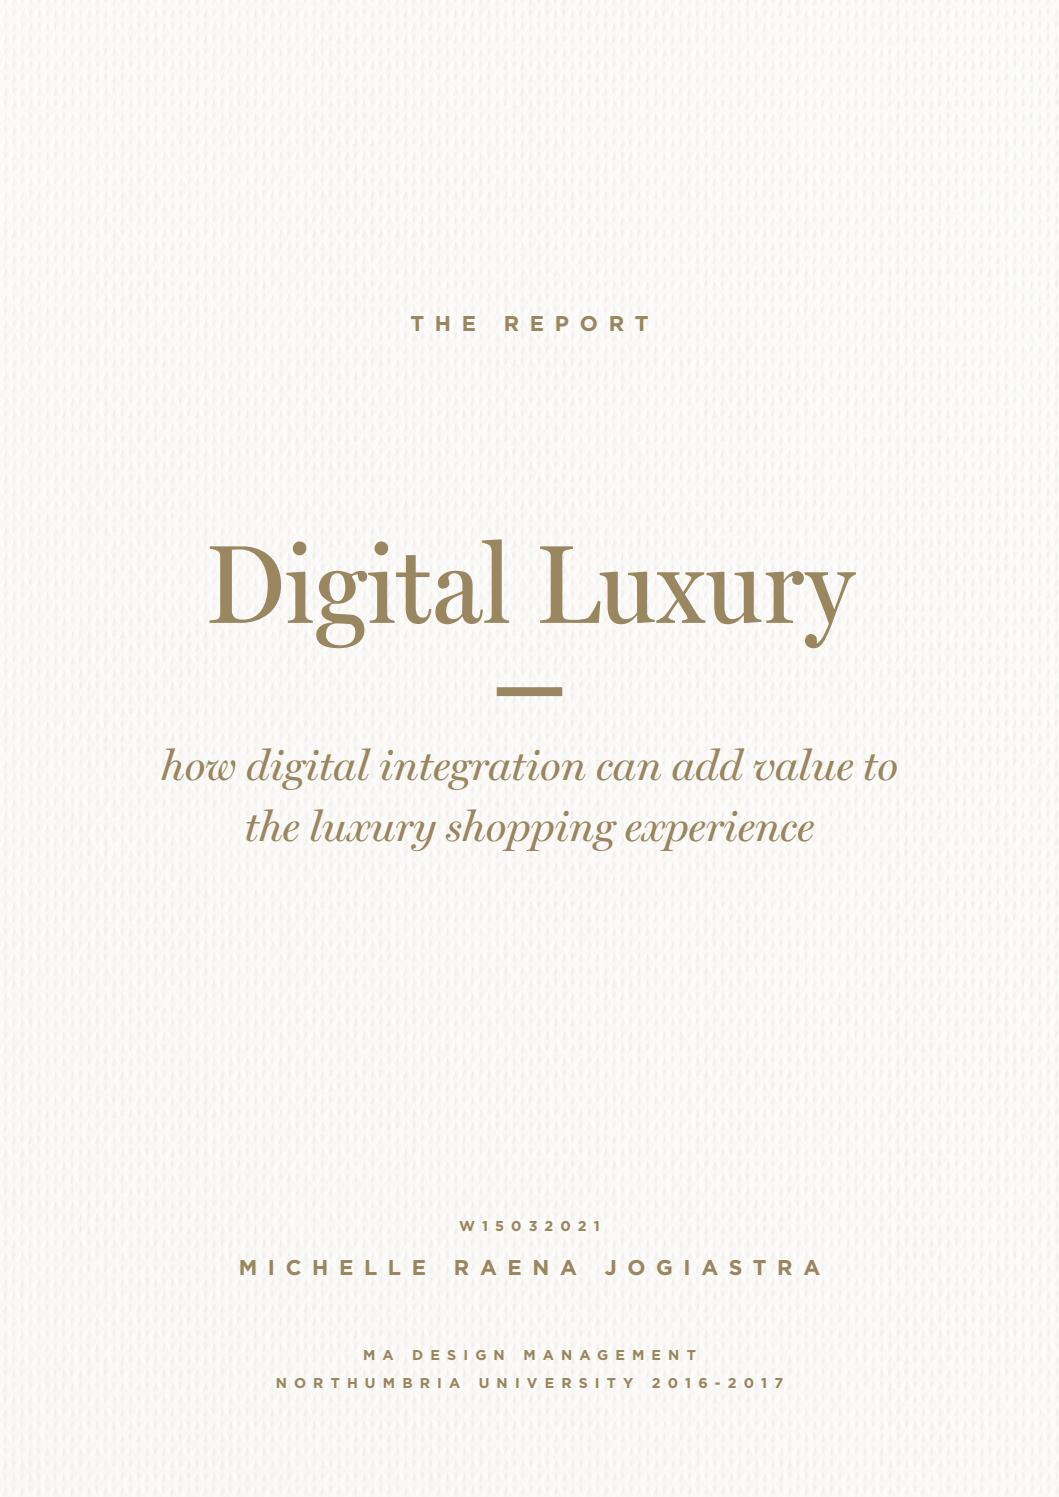 7225bcb9a68 Digital Luxury  A Thesis by Michelle Raena Jogiastra by Michelle Raena -  issuu